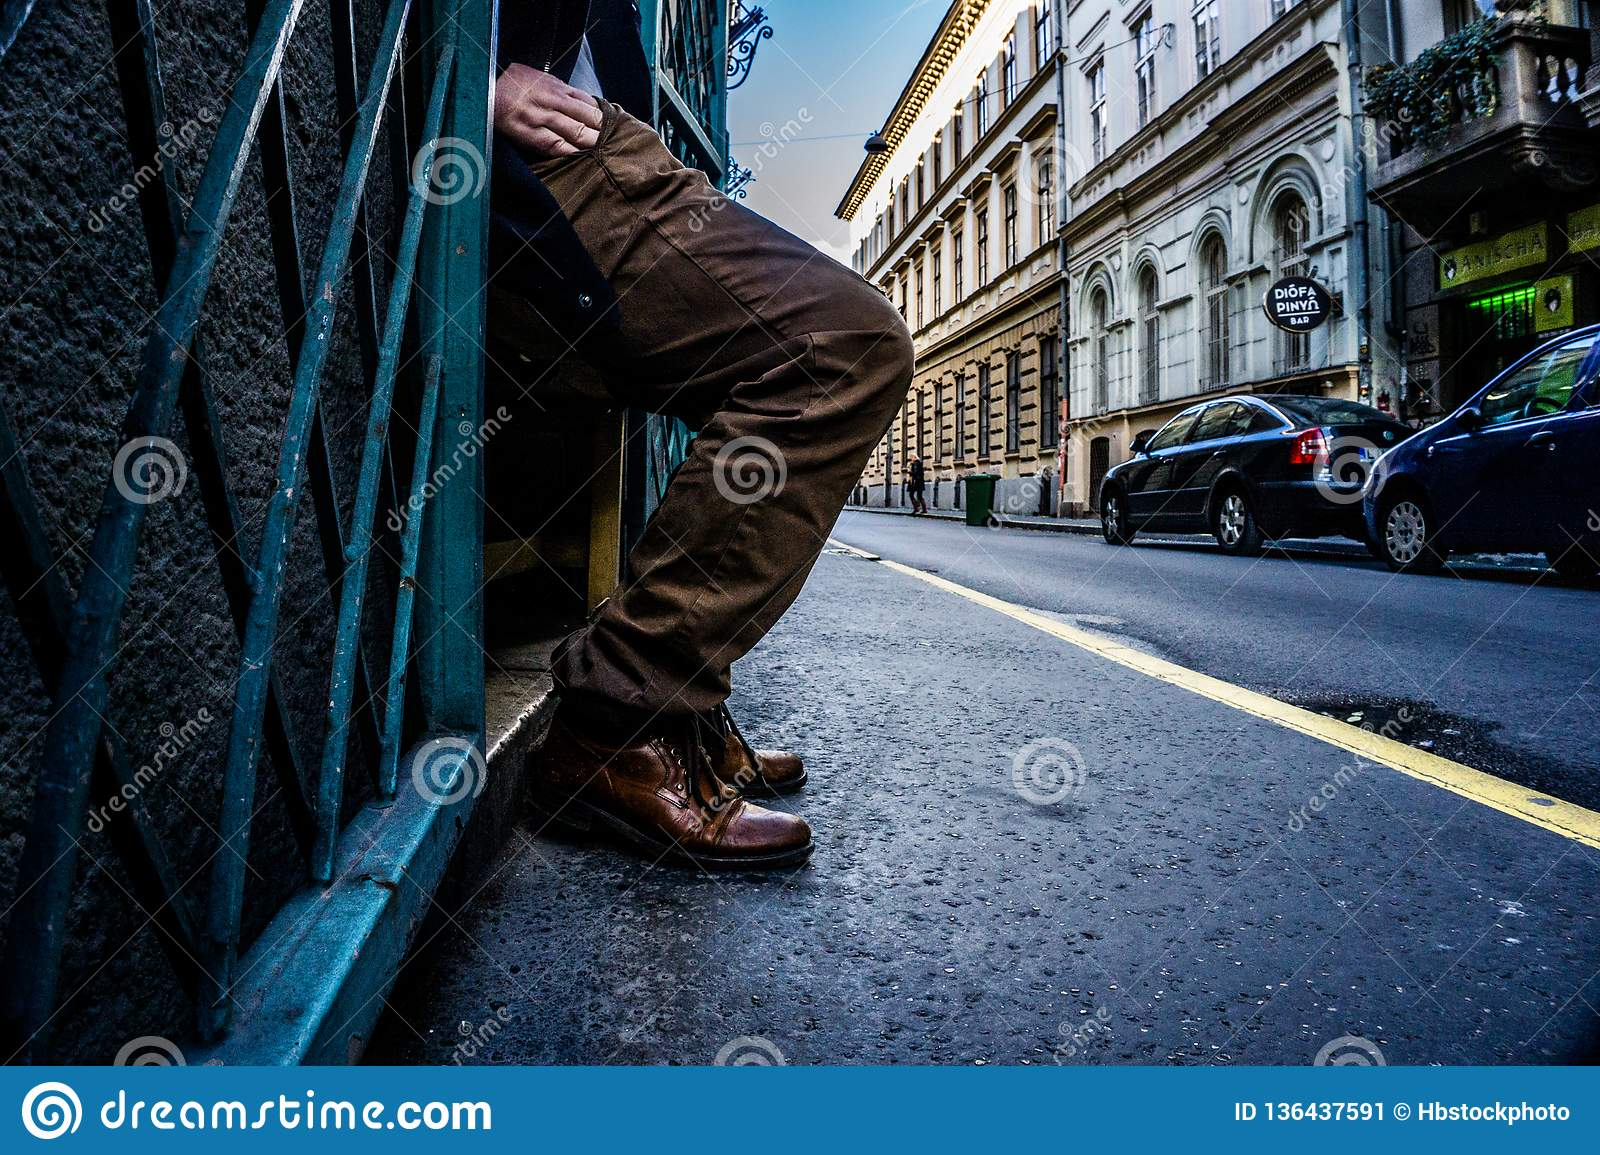 Legs and hand of a man reaching into his pocket on the streets of Budapest, Hungary with leading lines empasizing the act